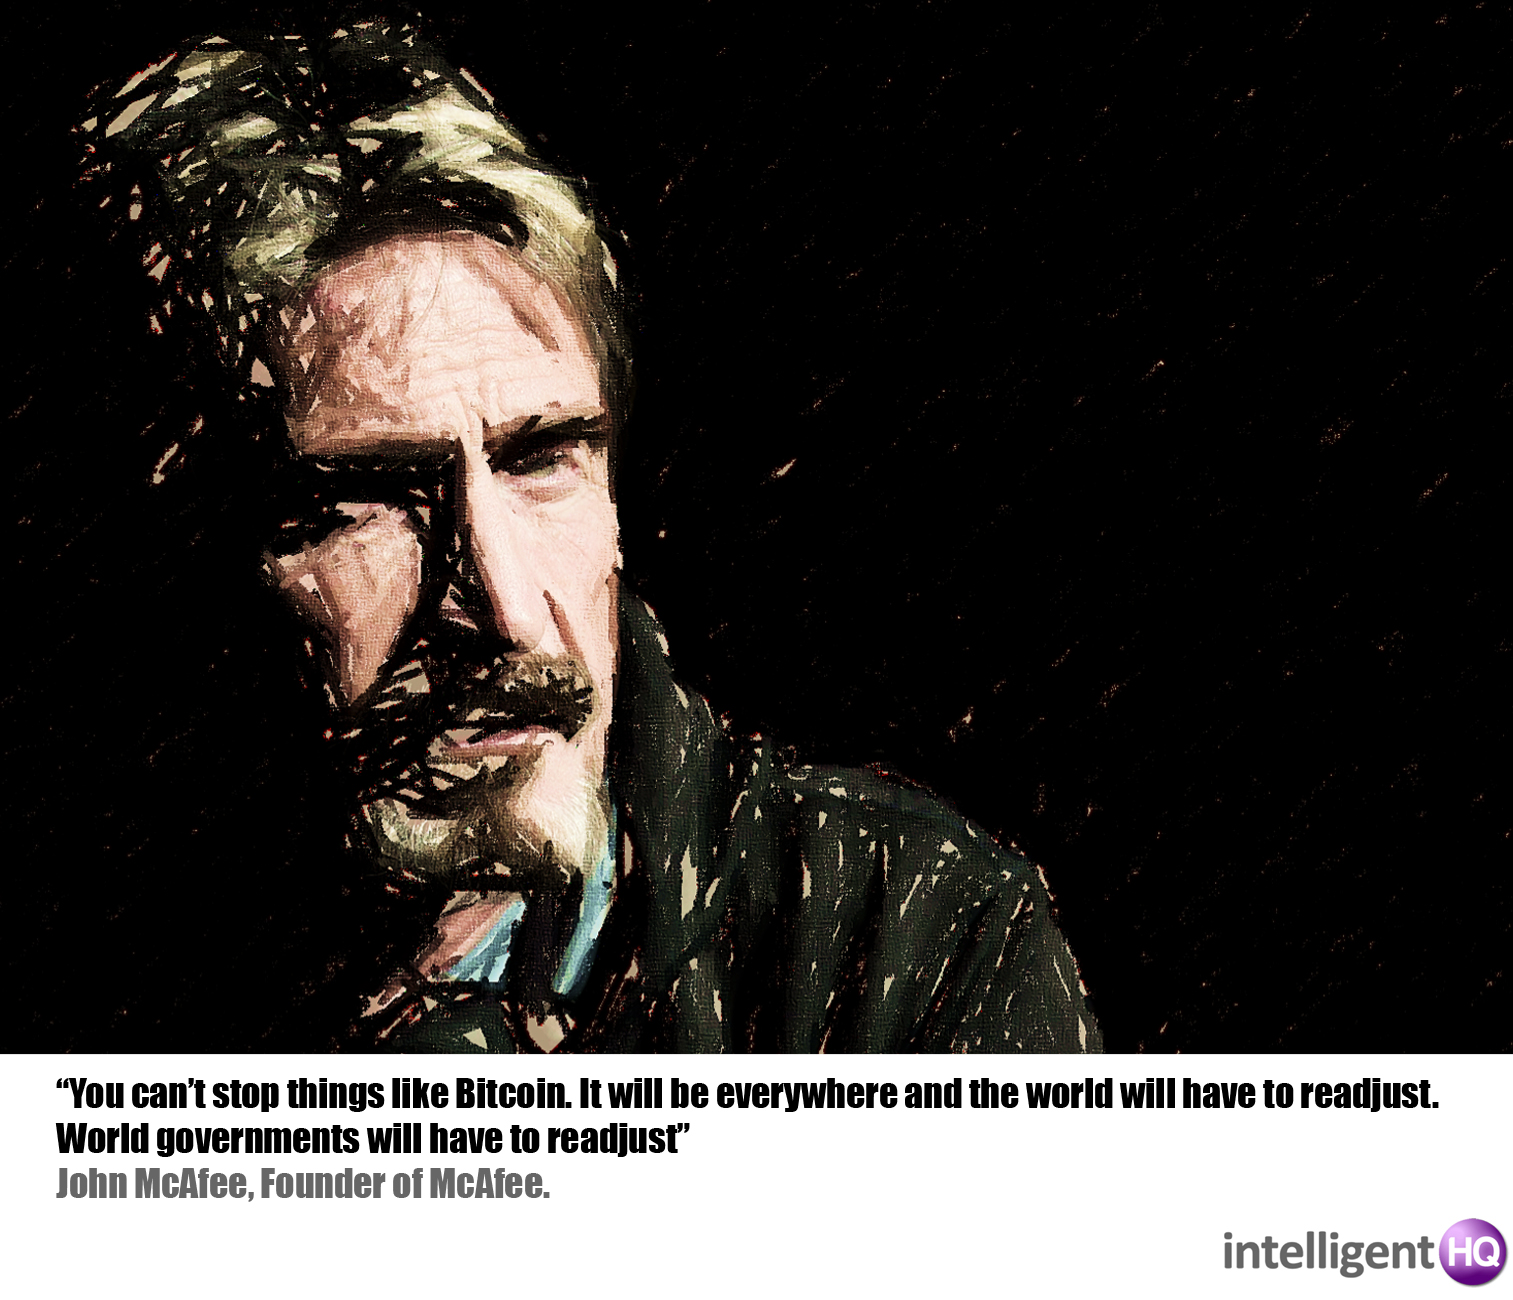 John McAfee, Founder of McAfee